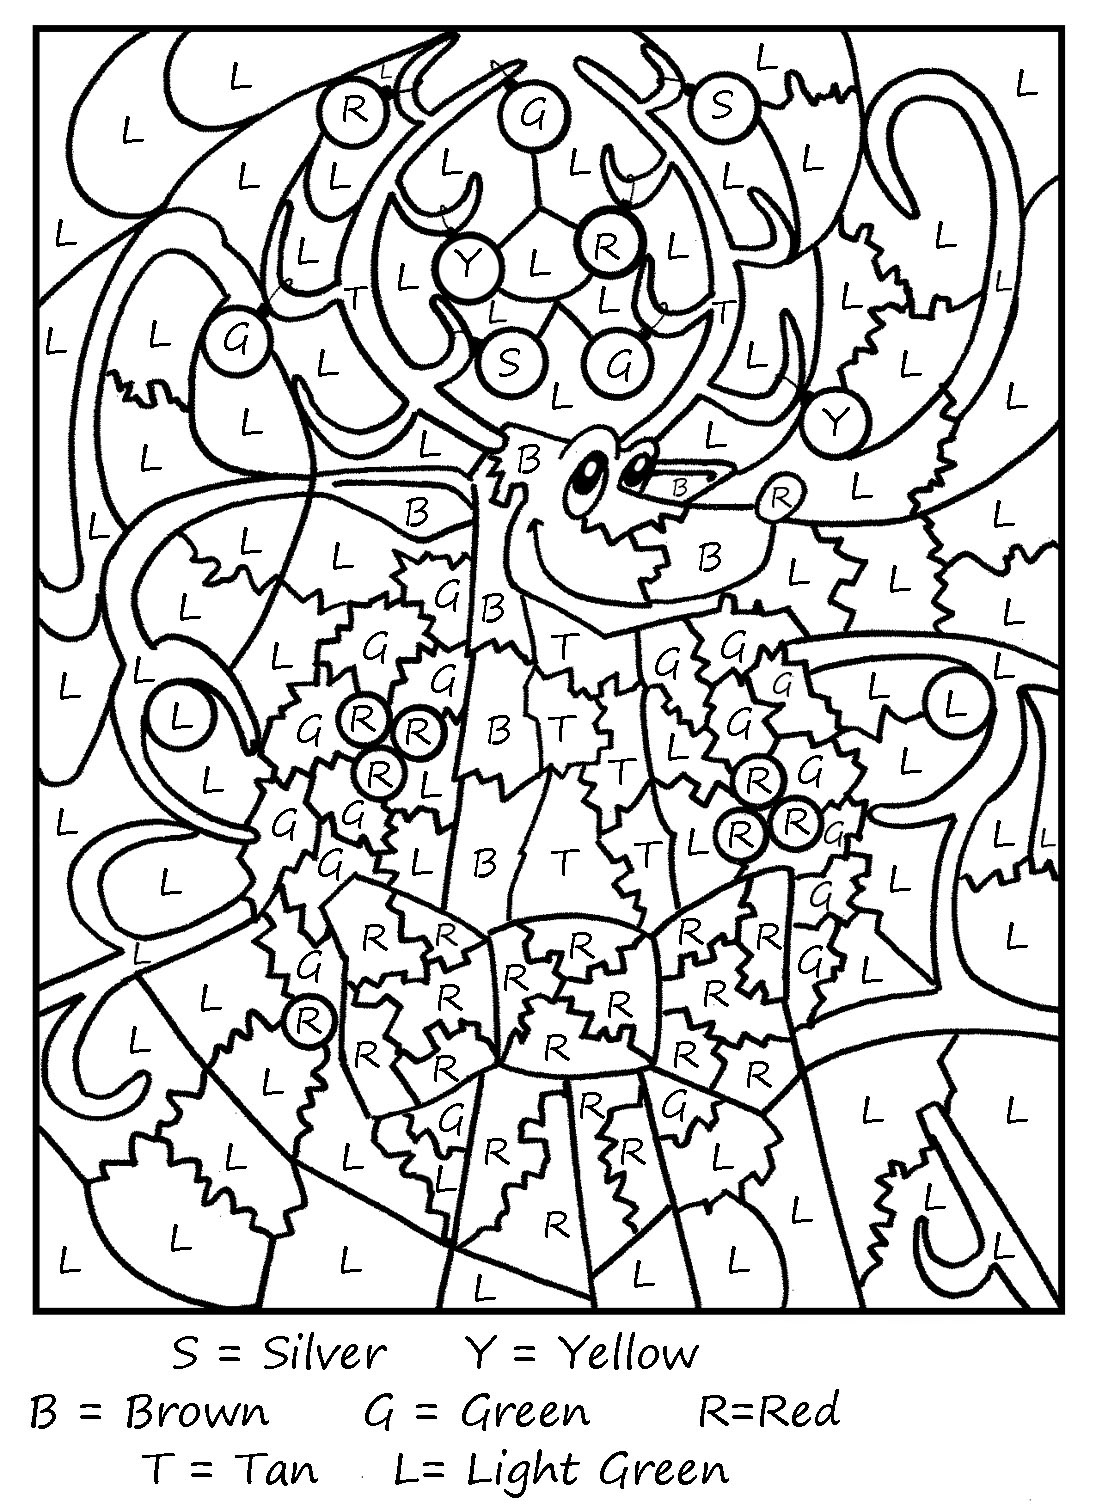 Colorletters Coloring Pages - Best Coloring Pages For Kids